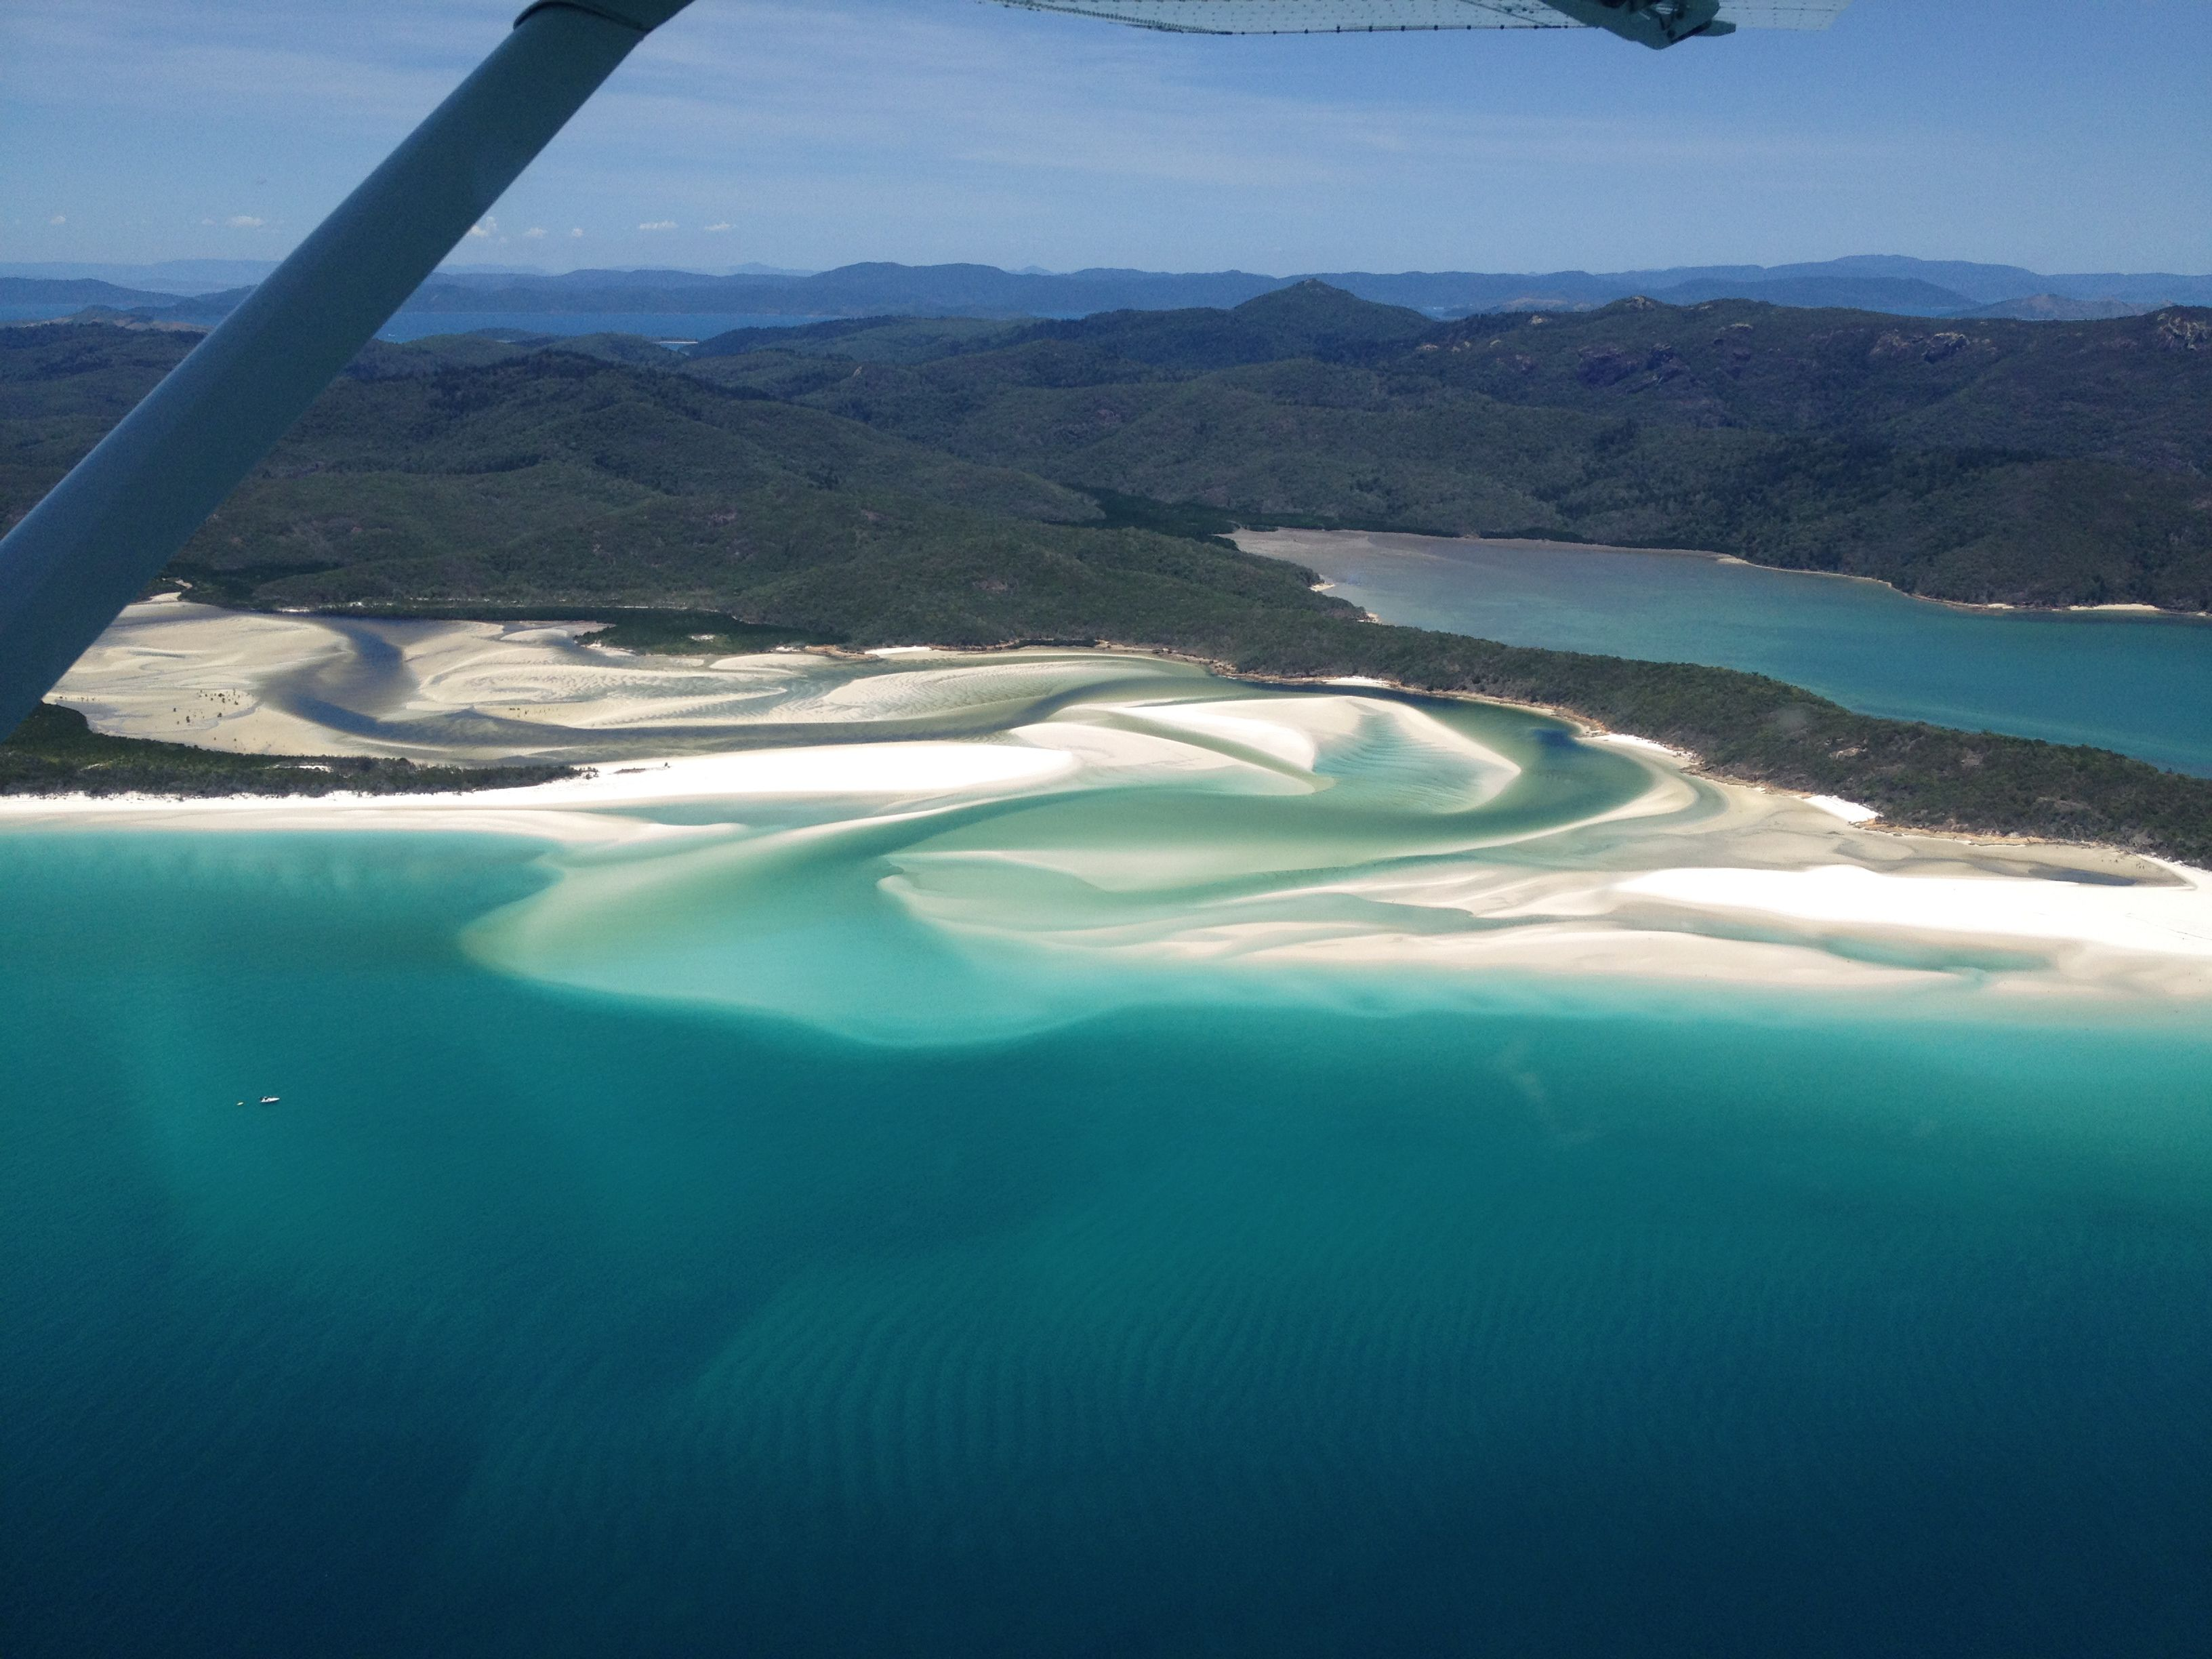 Australia: view coast from airplane. Roundtrip made by ouw customers.